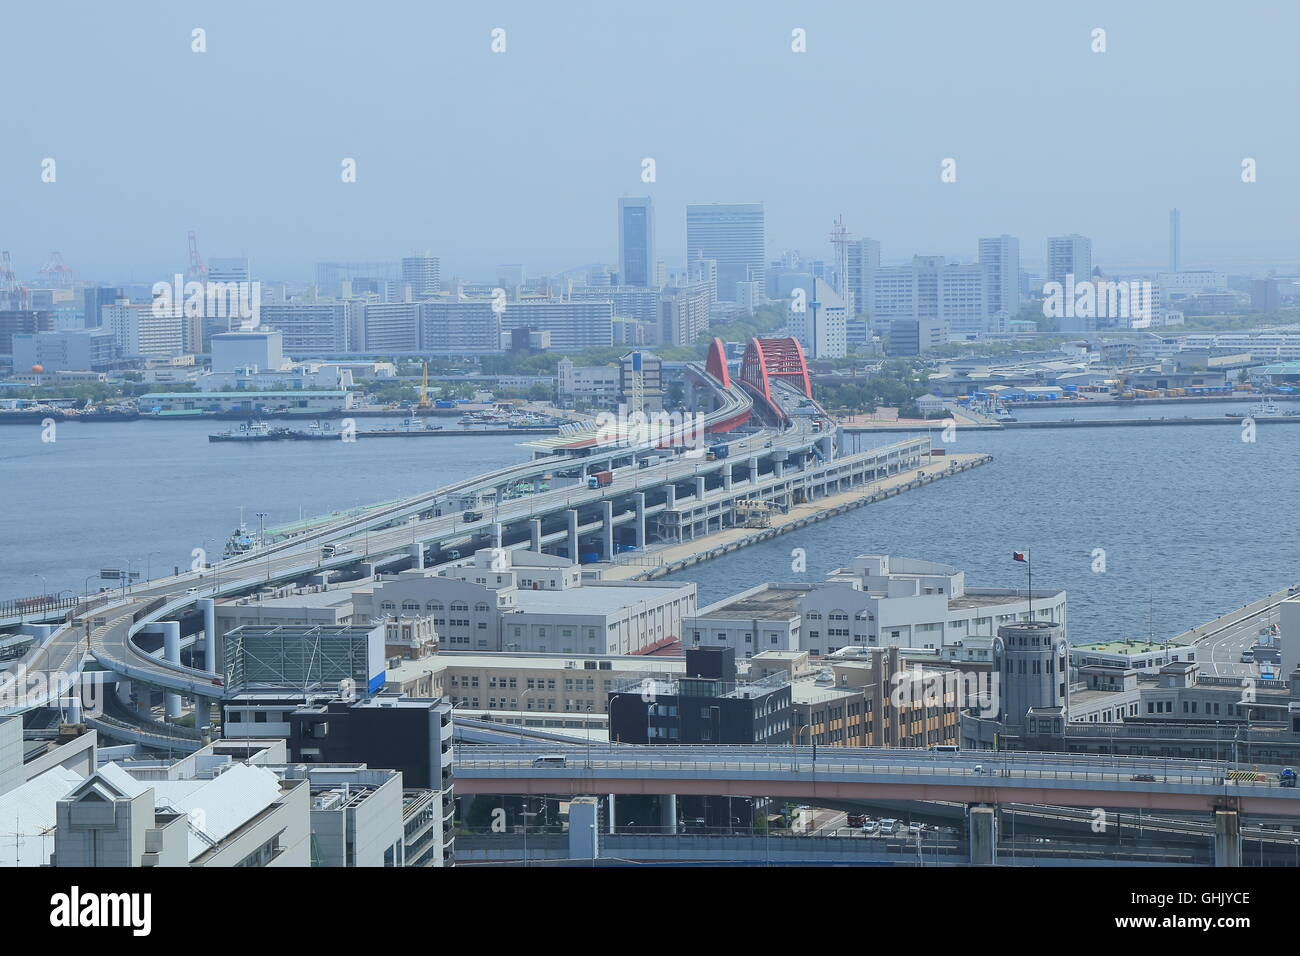 Port Island Kobe city view in Kobe Japan. - Stock Image